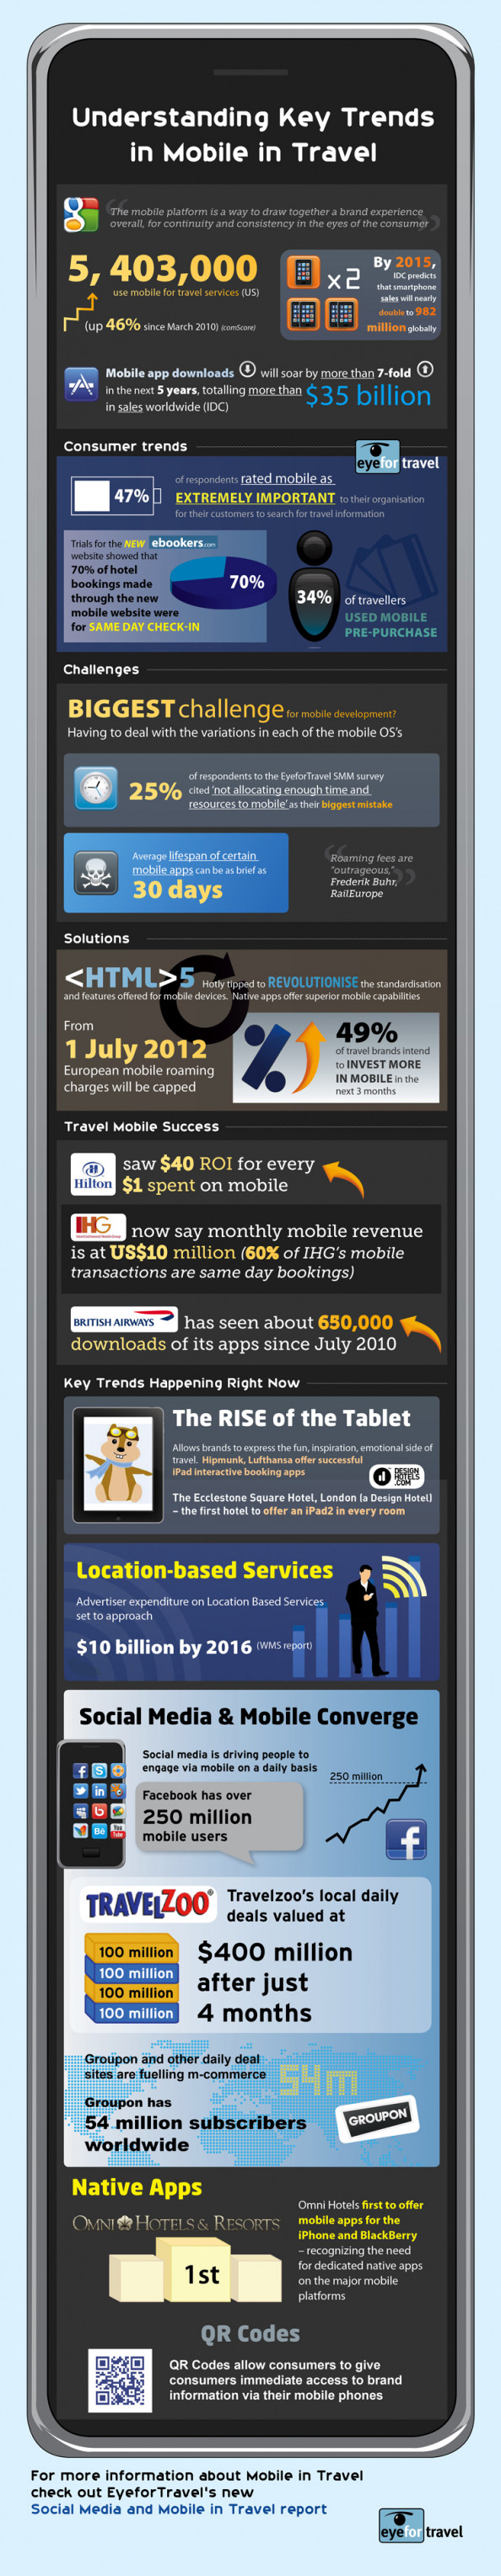 Understanding Key Trends in Mobile Travel  Infographic